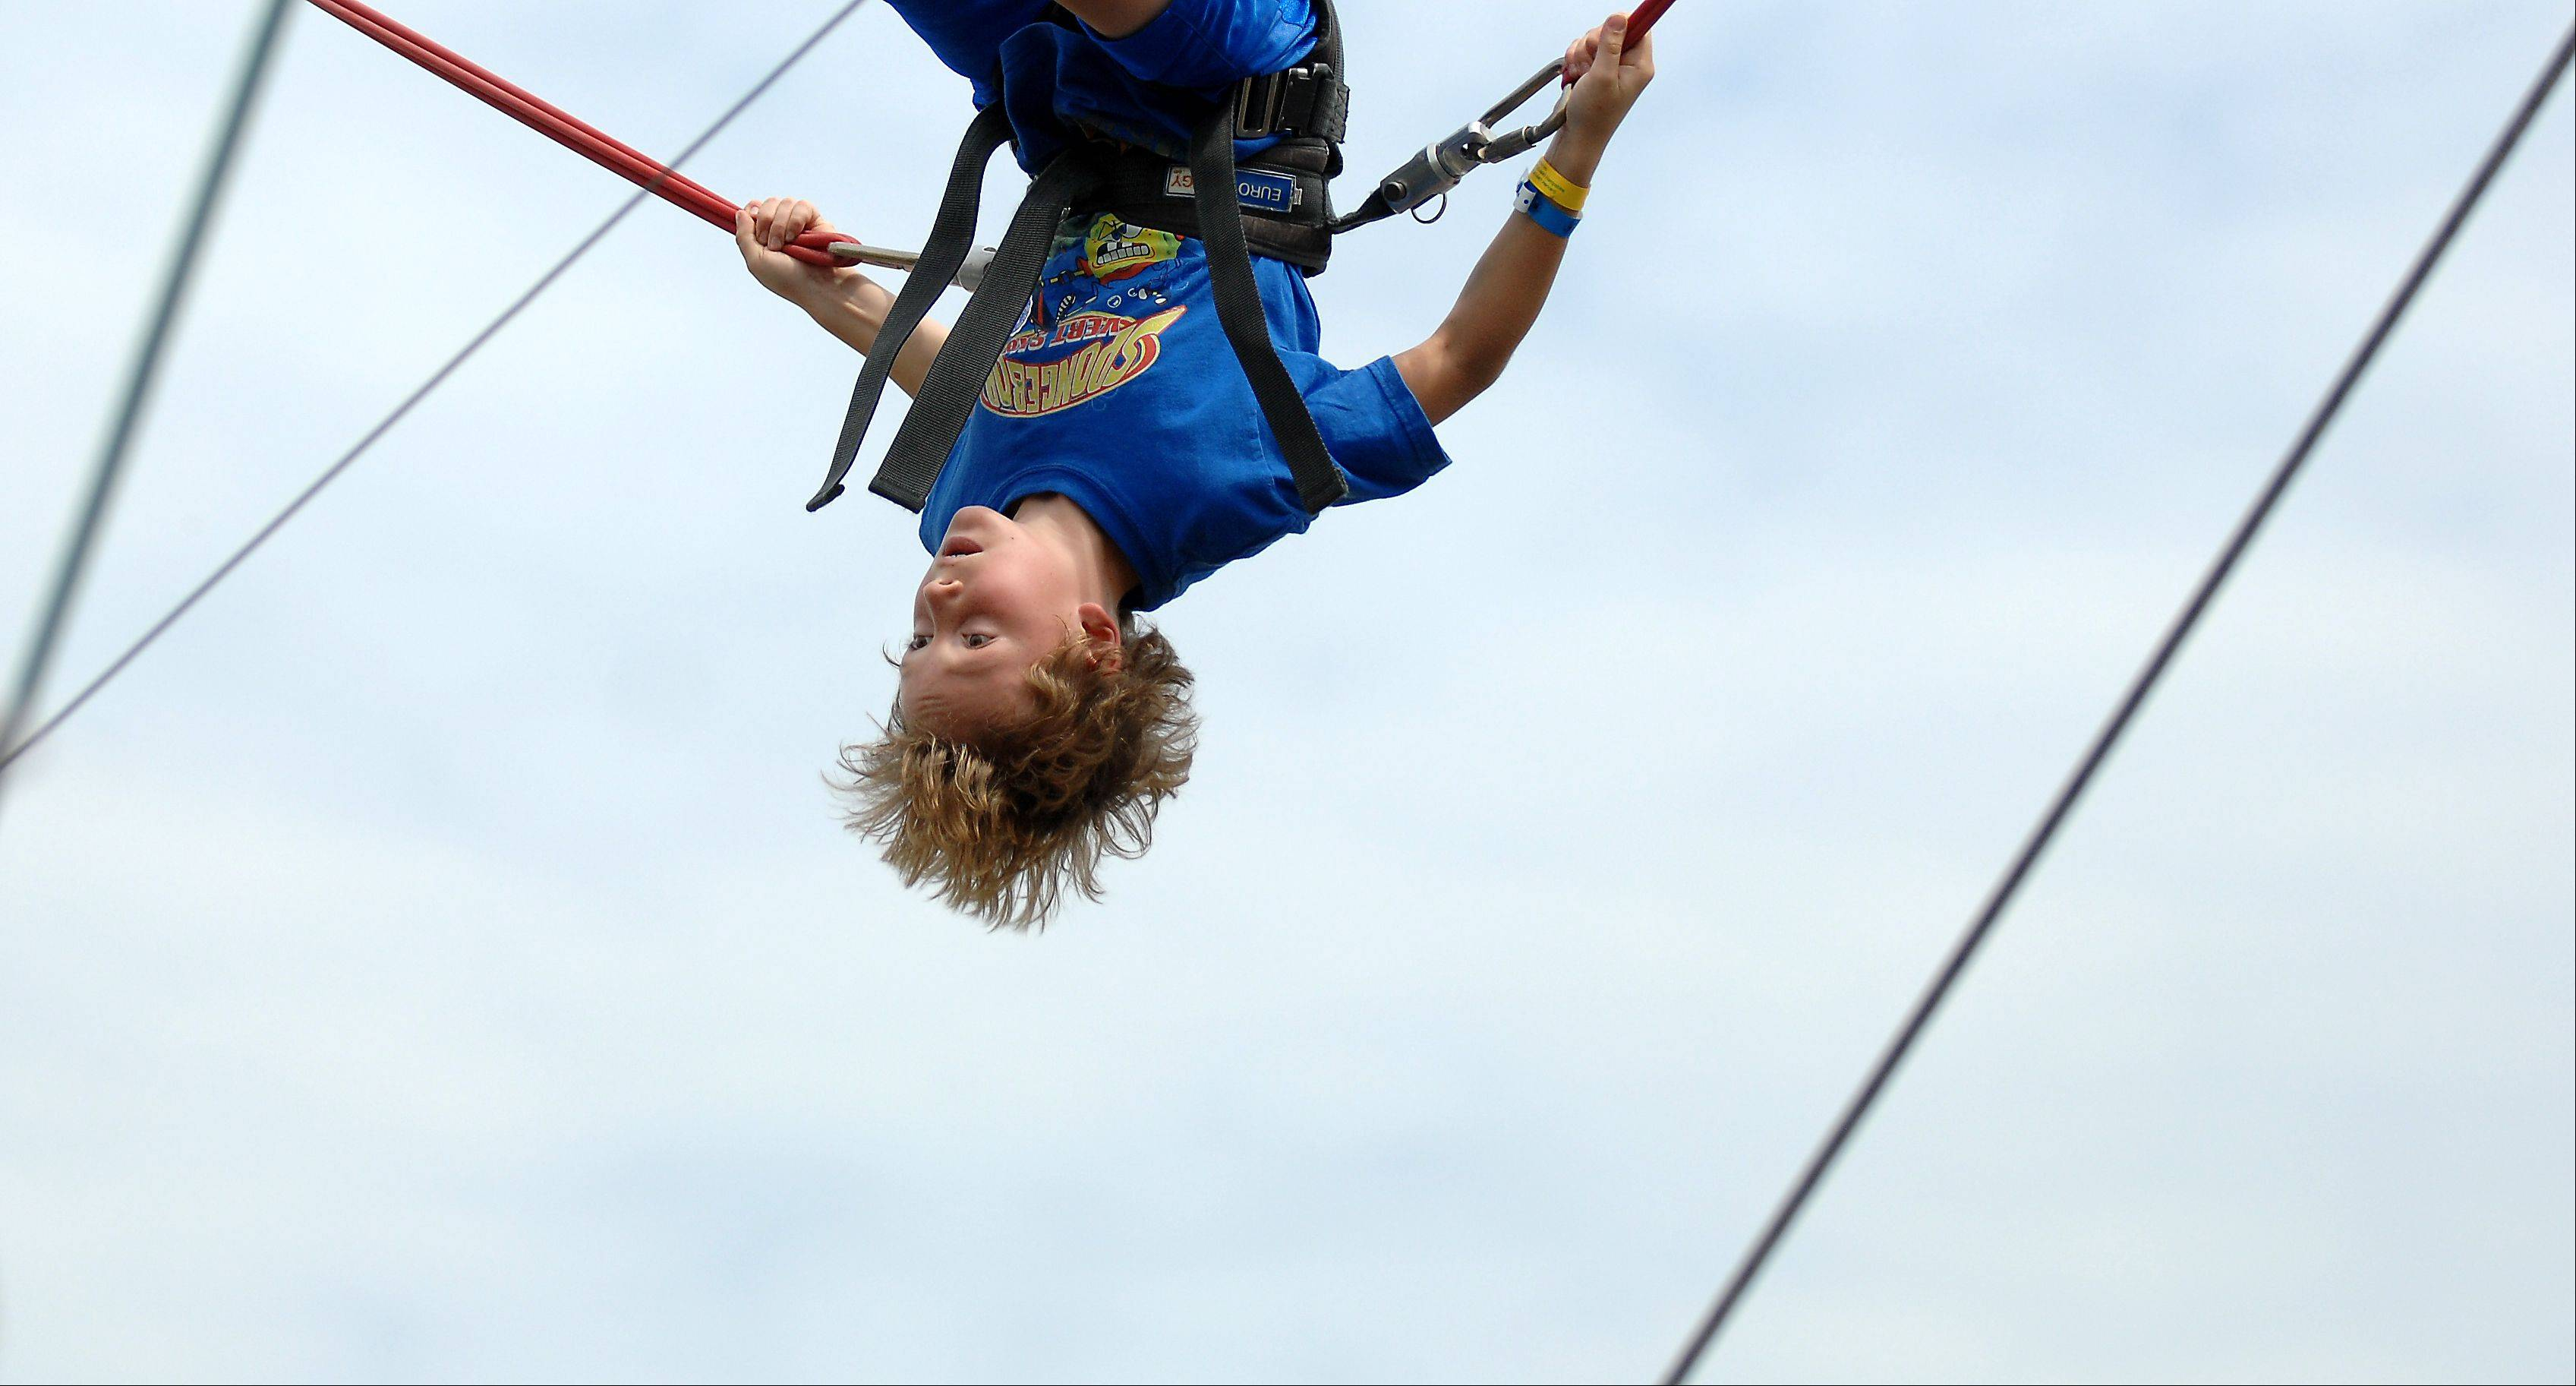 Colin McQueen, 9, of Woodstock does flips on the quad power jump during day two of the McHenry County Fair in Woodstock Thursday.